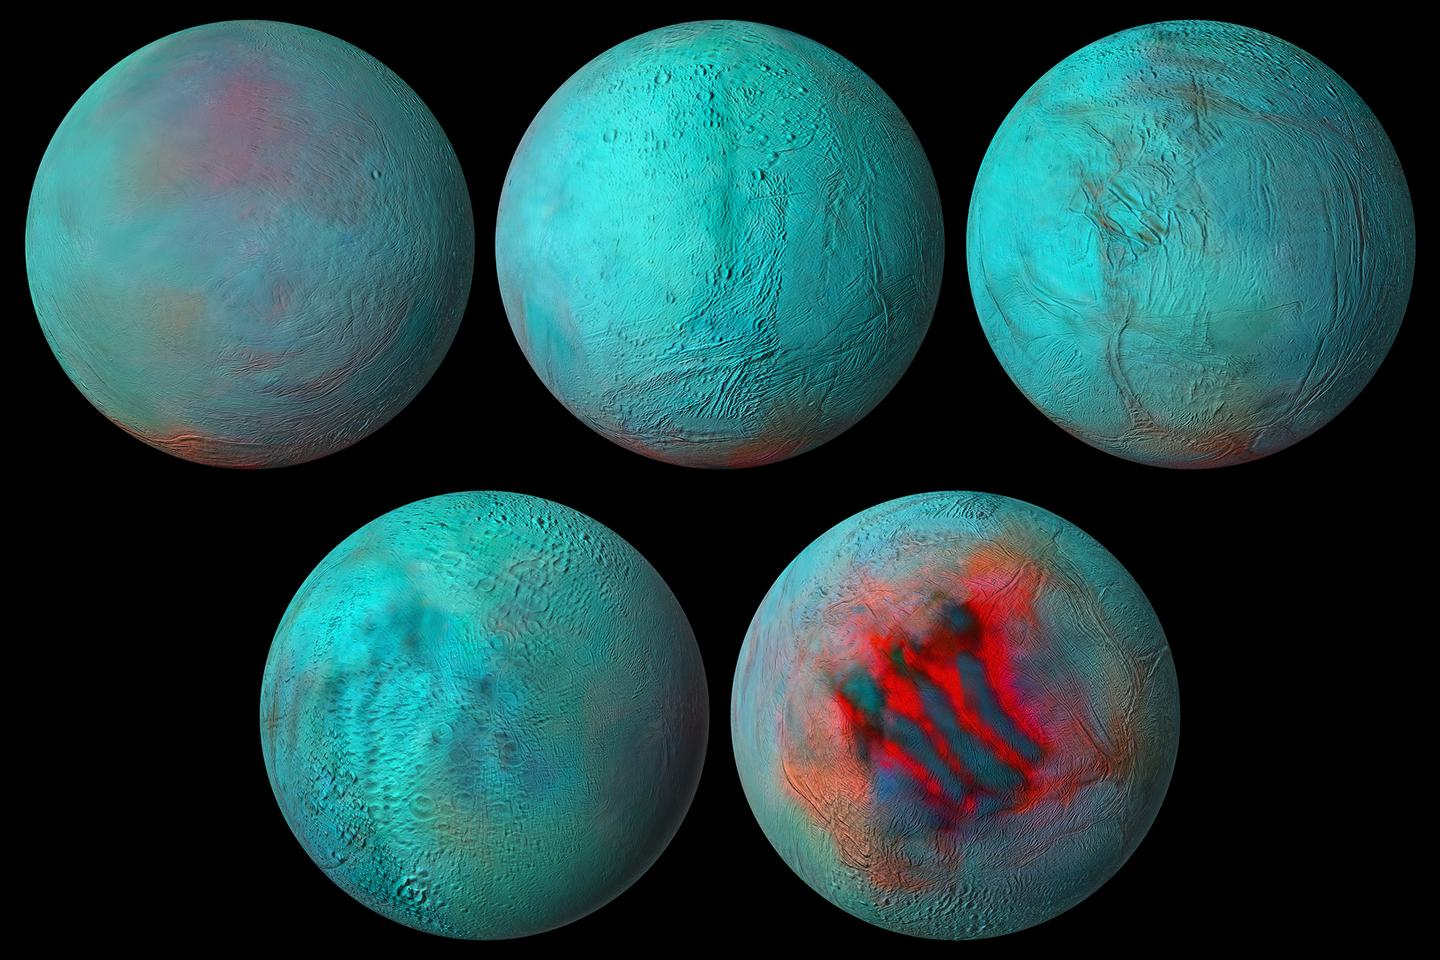 Scientists have constructed a new global infrared mosaic of Enceladus from Cassini mission data